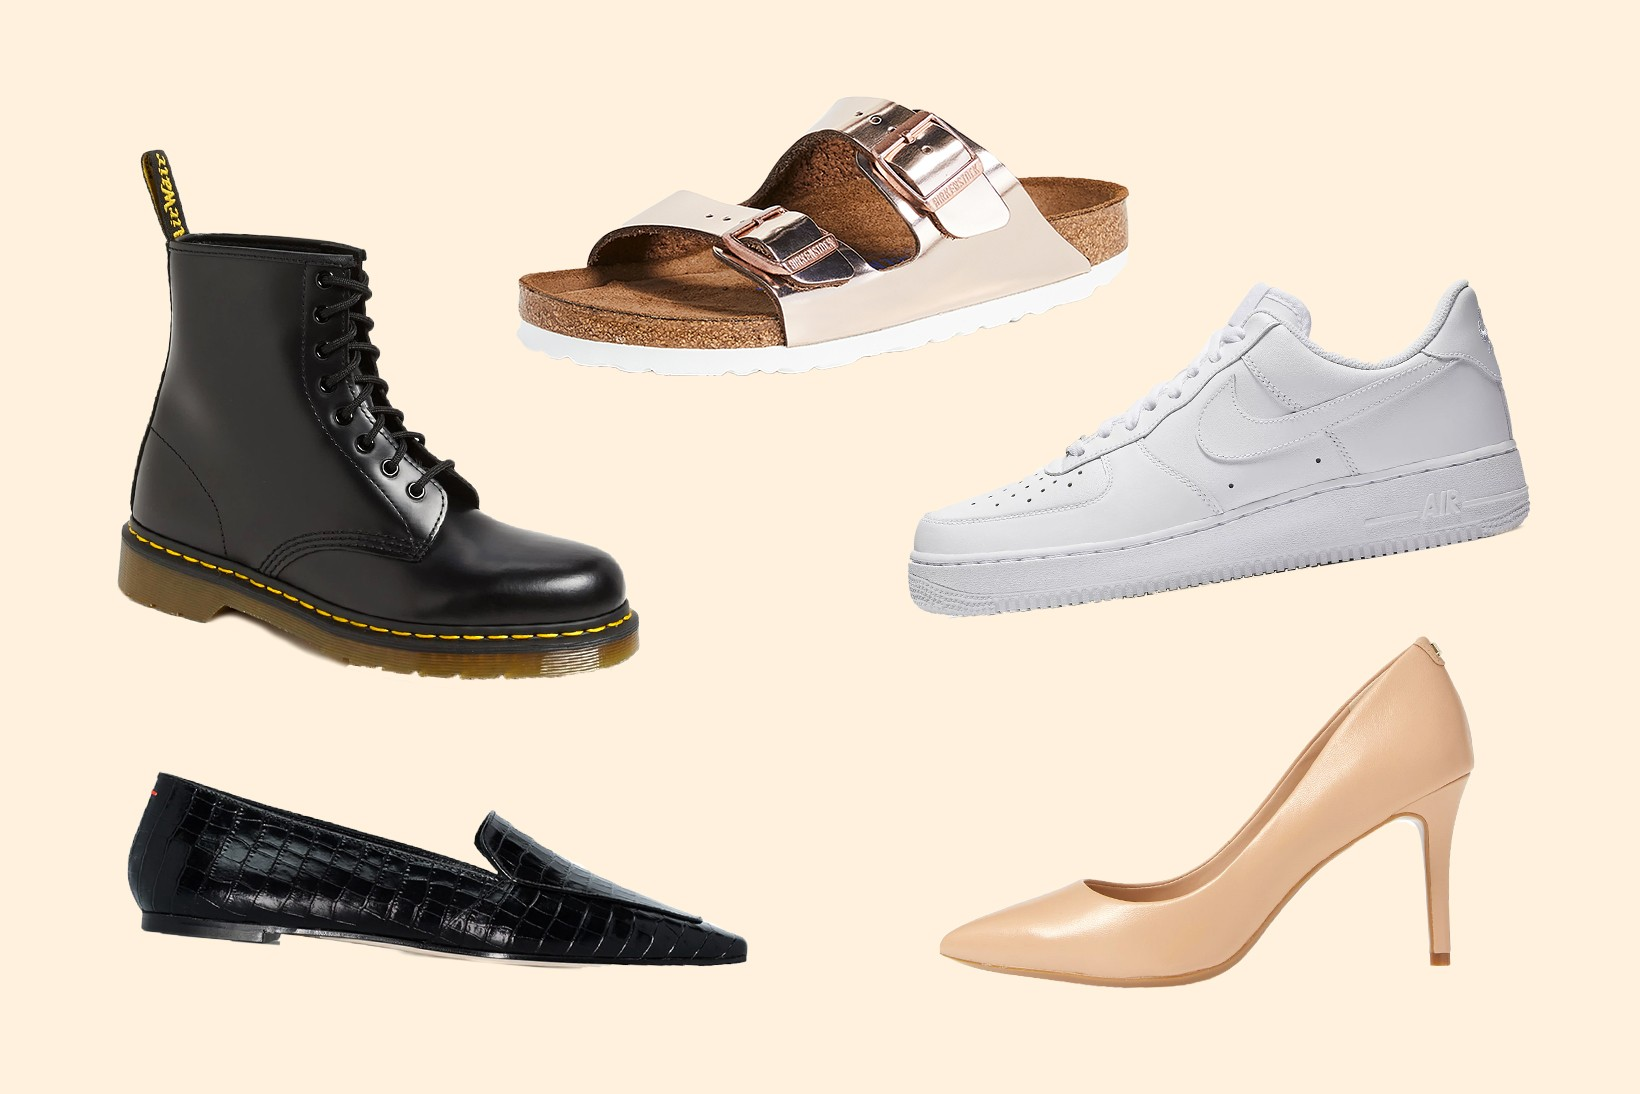 The 10 Essential Shoes You Need in Your